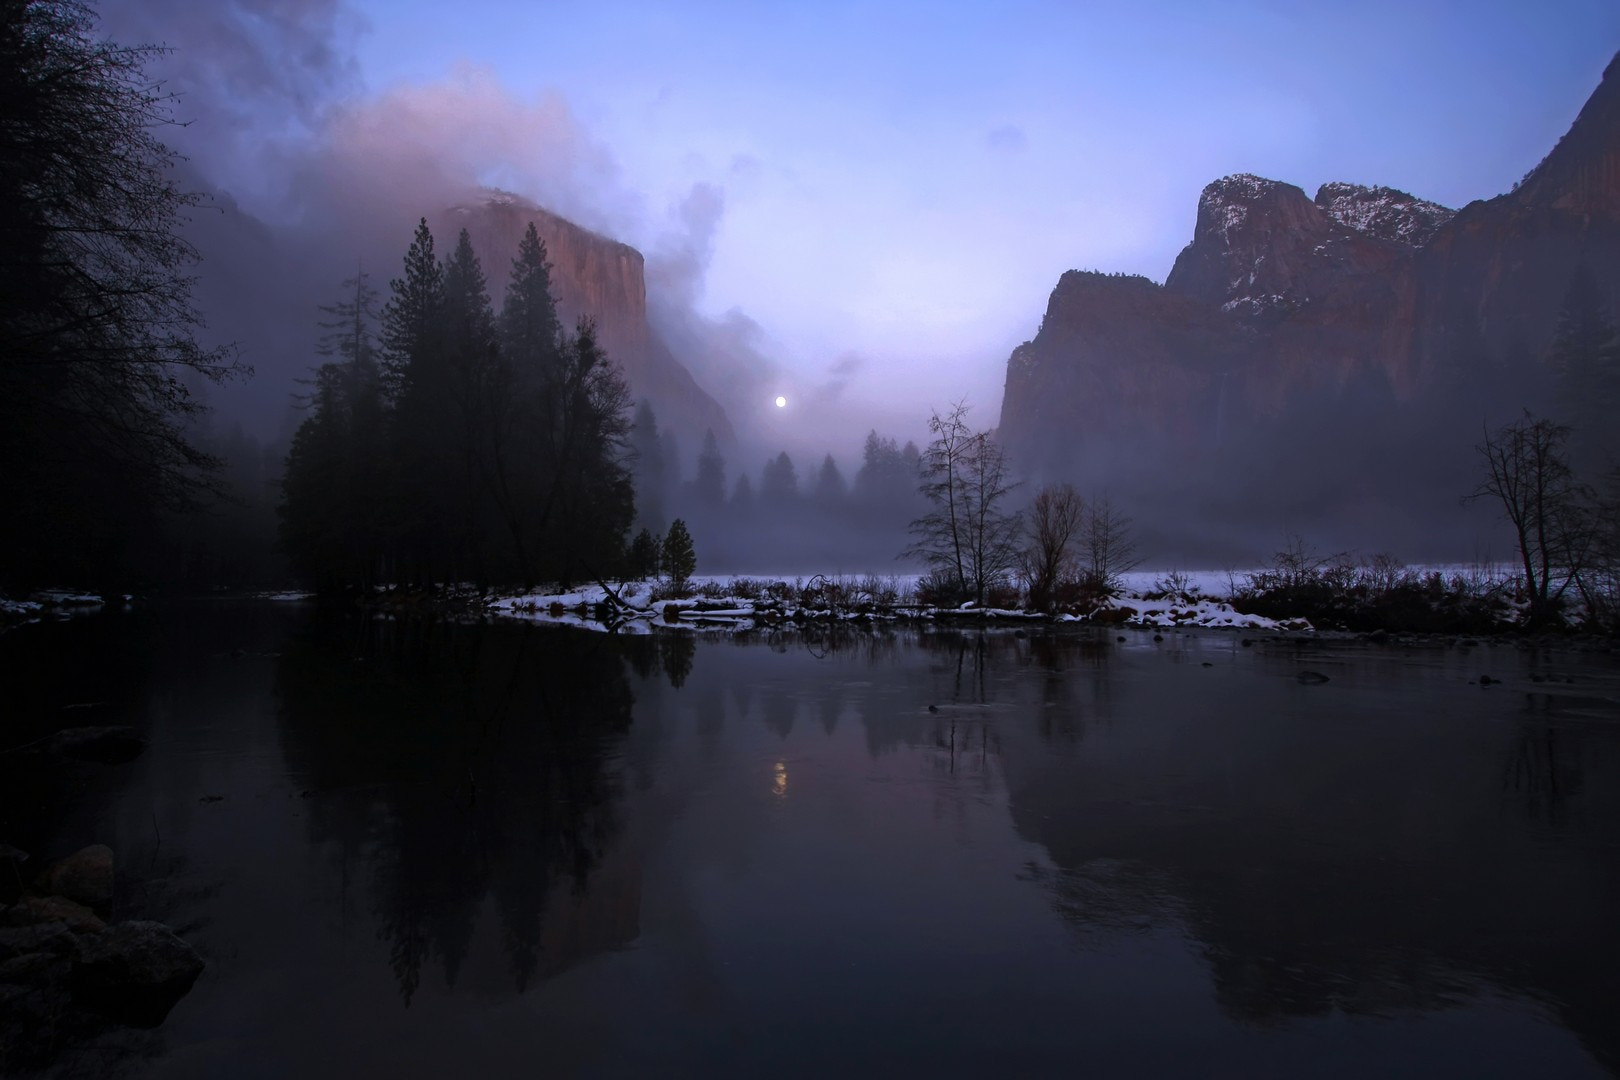 Photograph Moon Rise, Yosemite, California by Antoine Vu on 500px